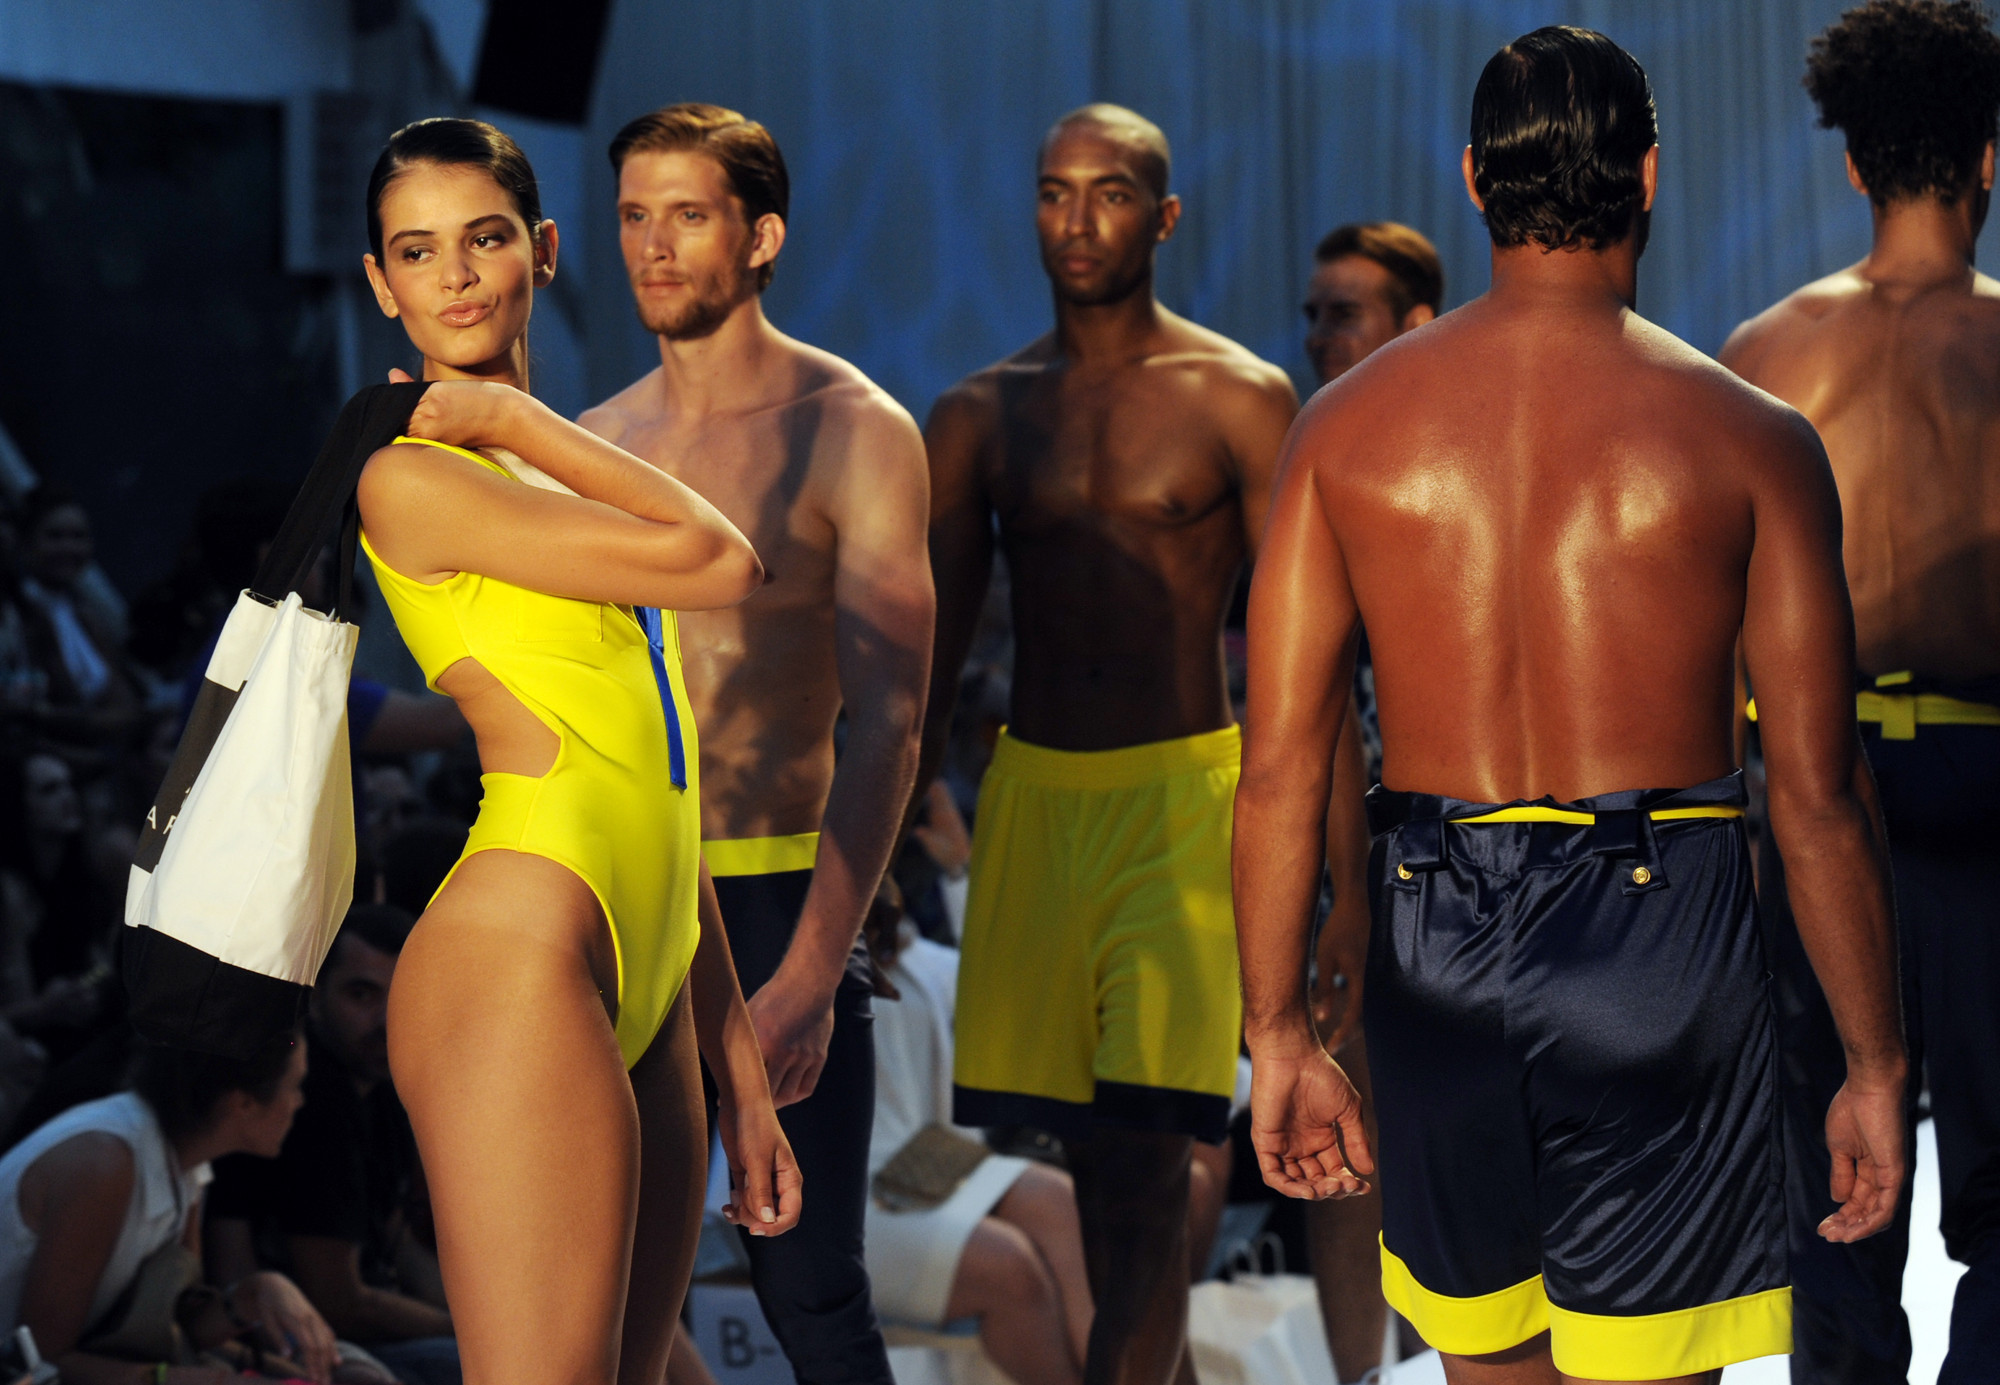 Miami Swim Week: The catwalk - Araujo